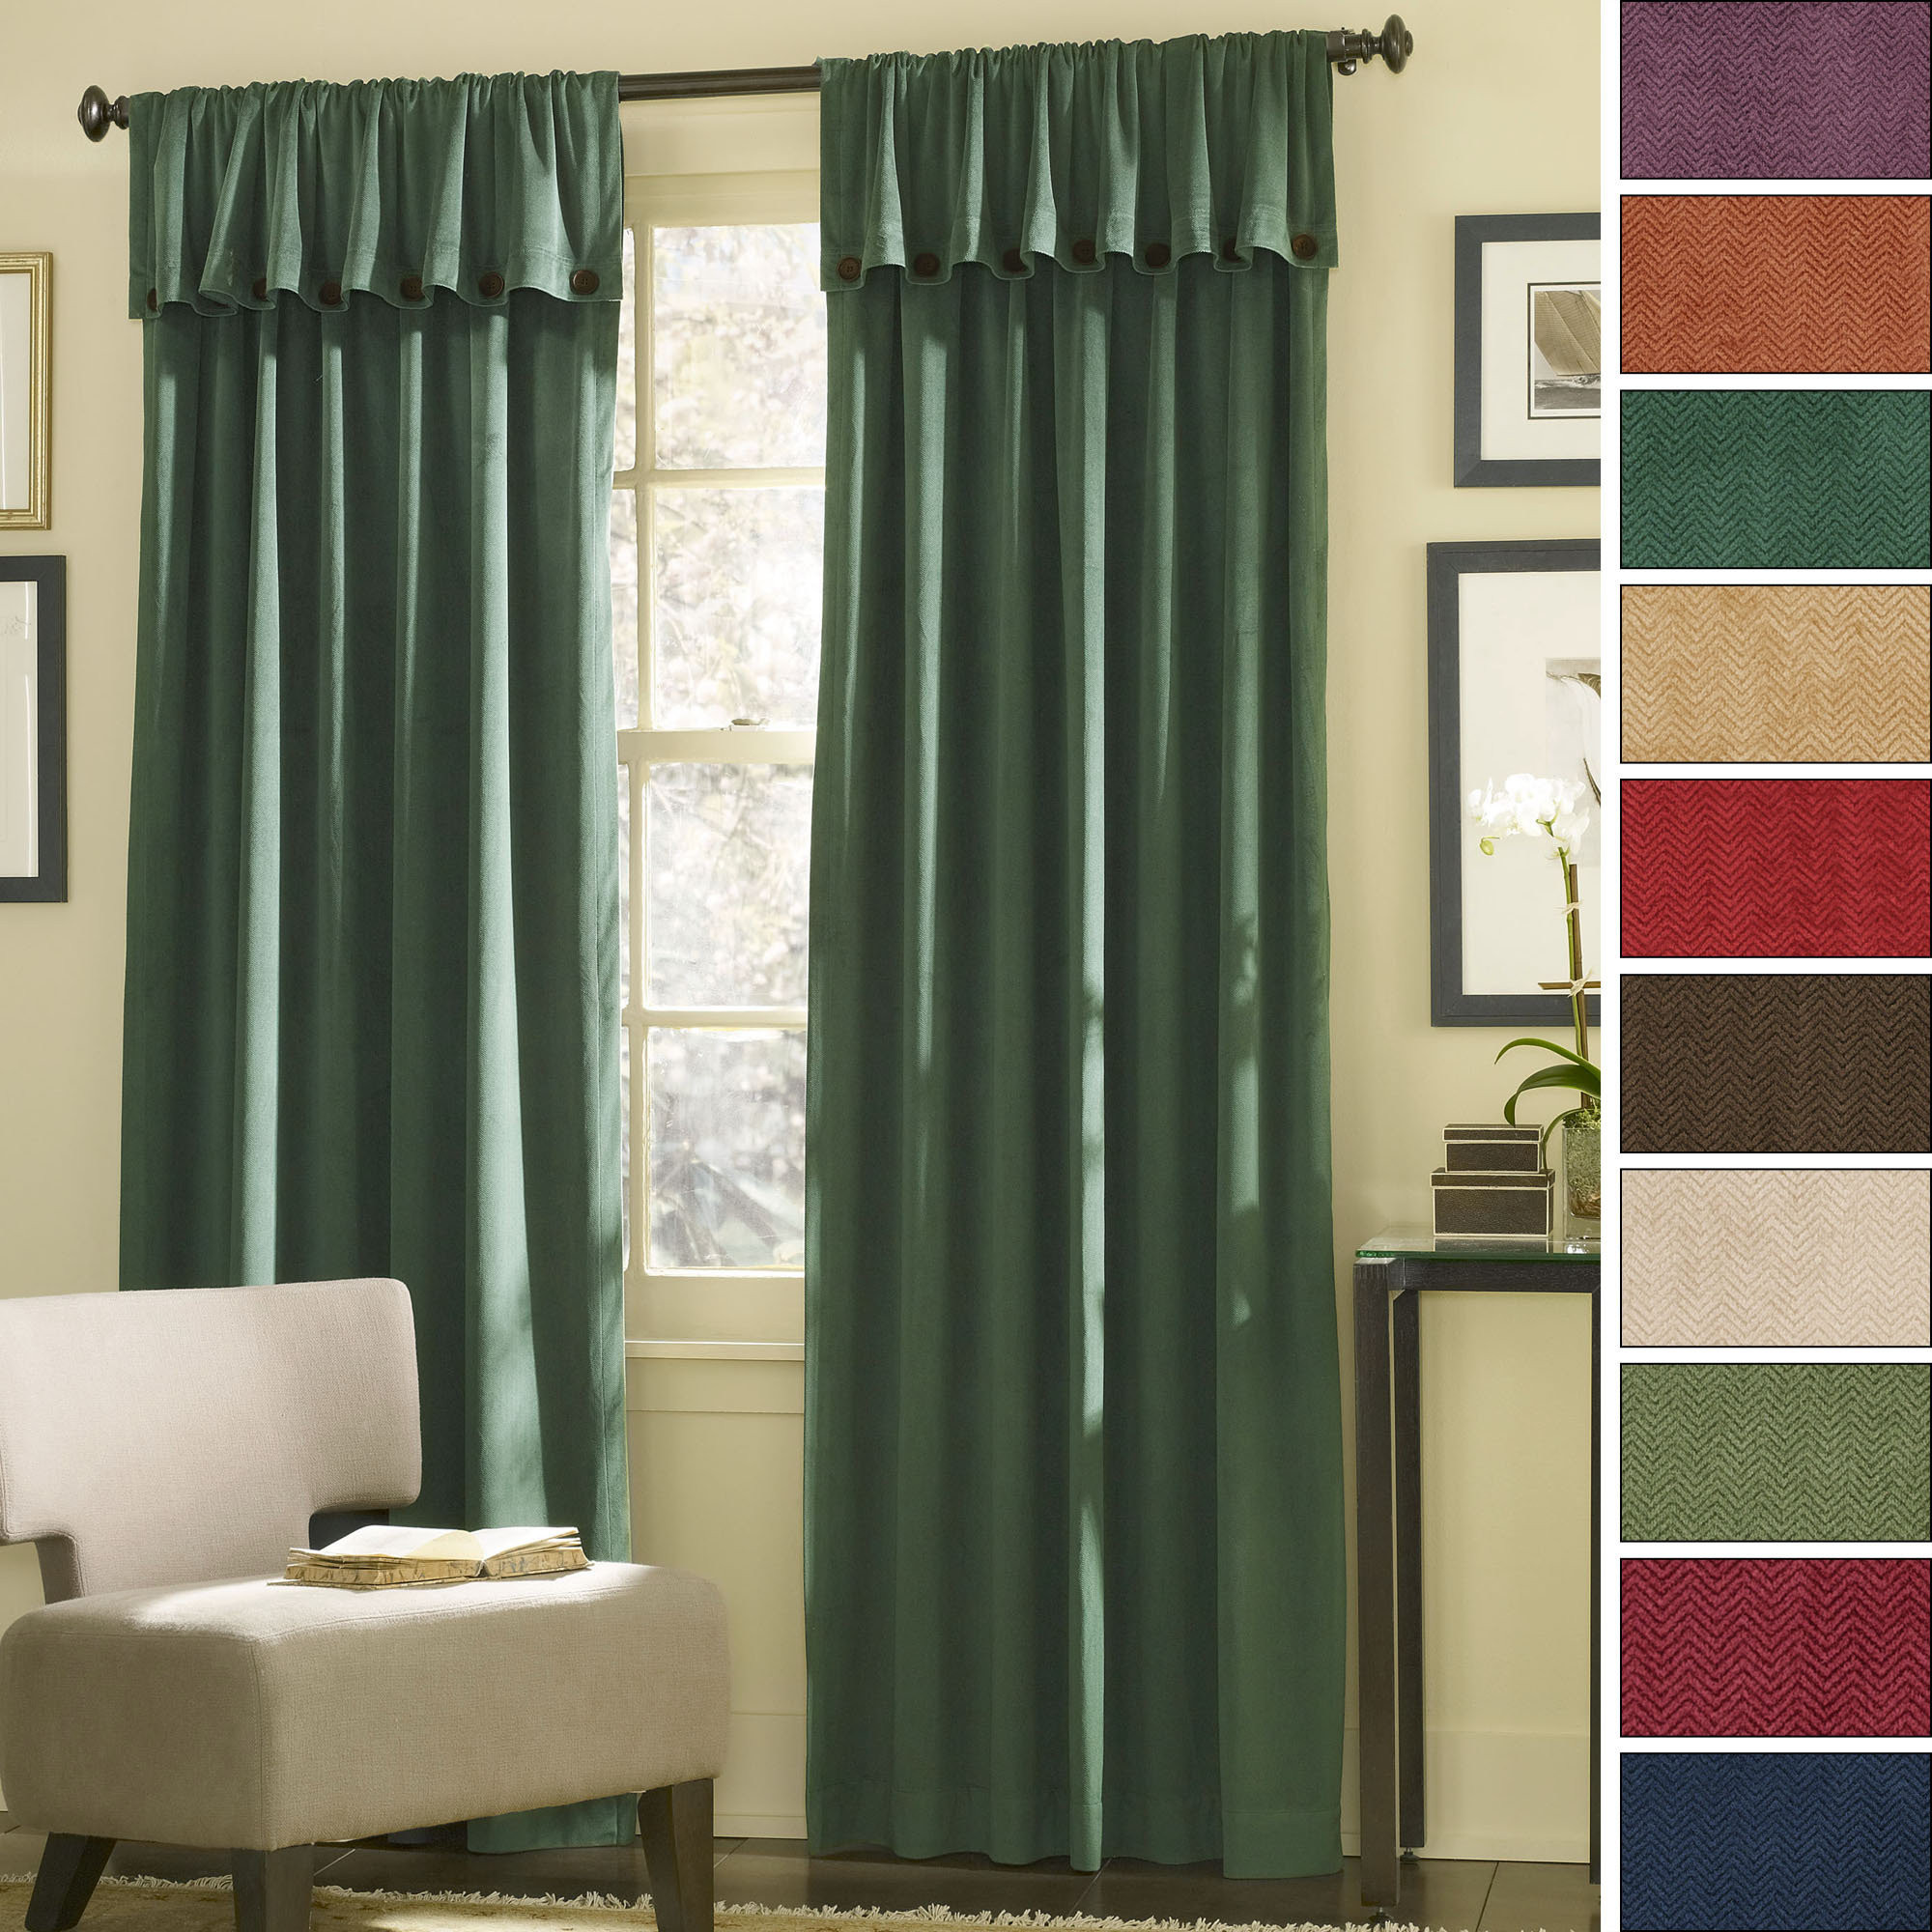 Best ideas about Patio Door Curtain Ideas . Save or Pin Choosing Top Patio Door Curtains Design IdeasPlywoodChair Now.